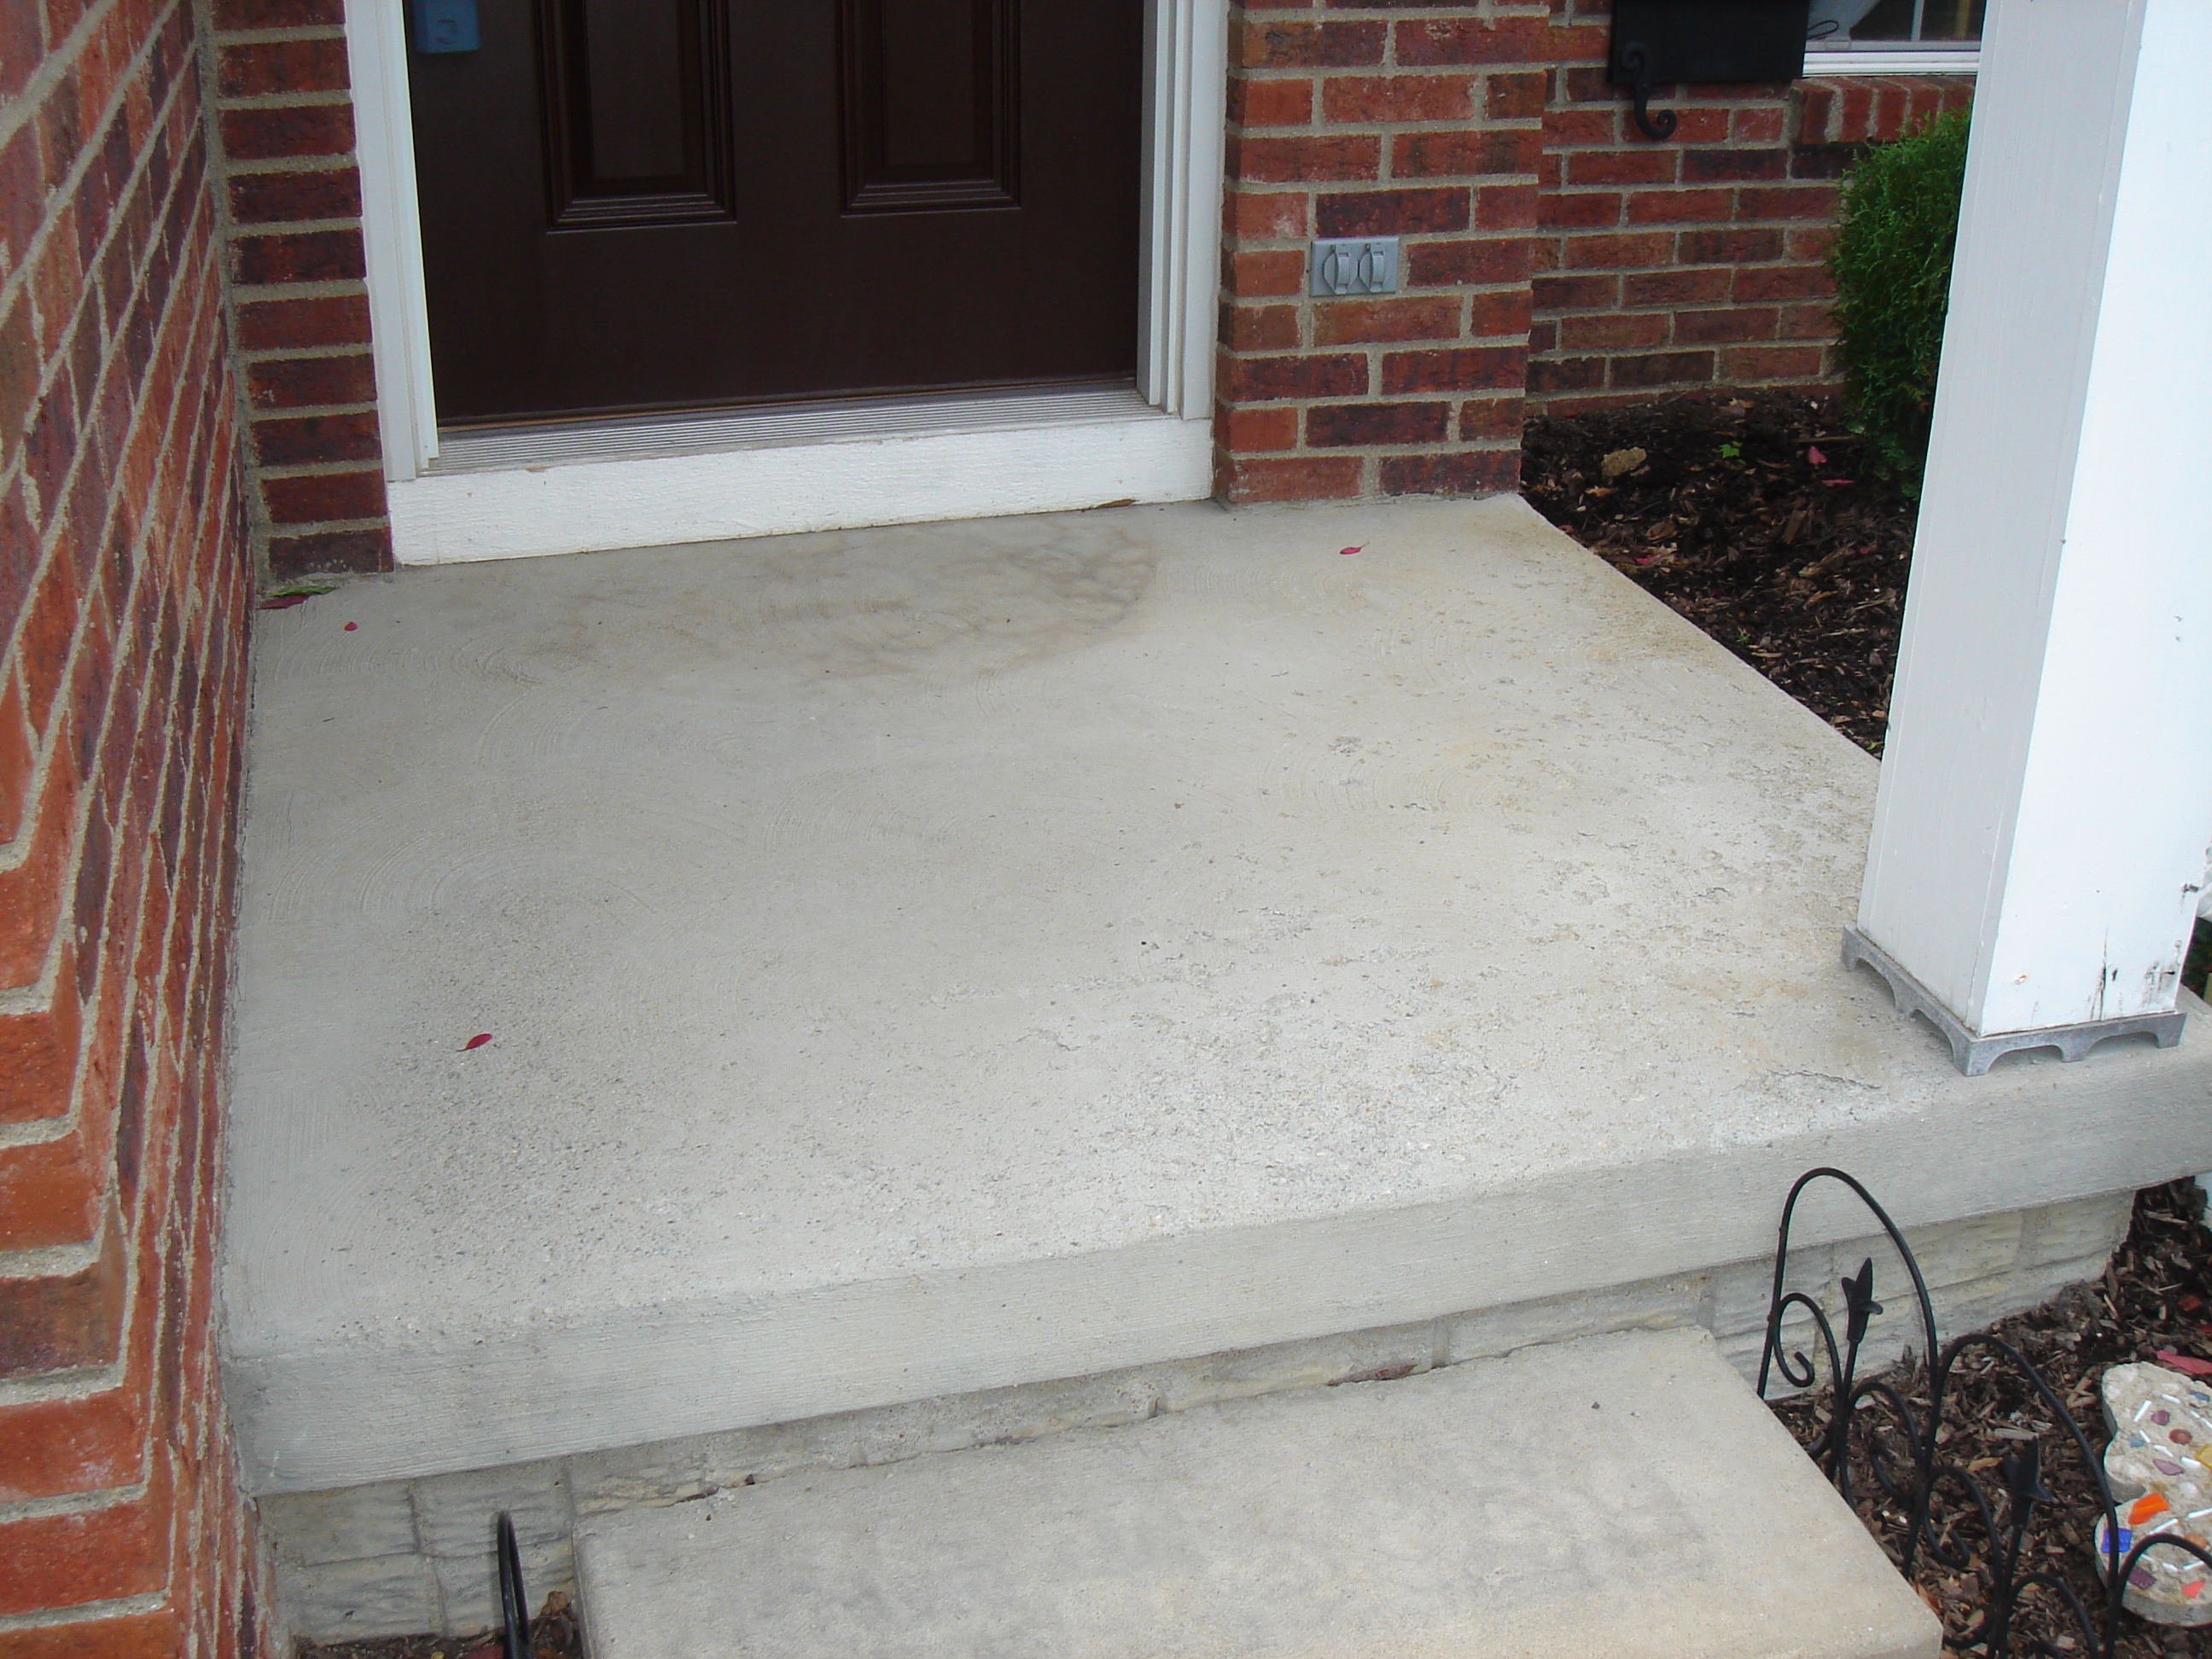 Concrete resurfacing concrete contracting solutions - Exterior concrete resurfacing products ...